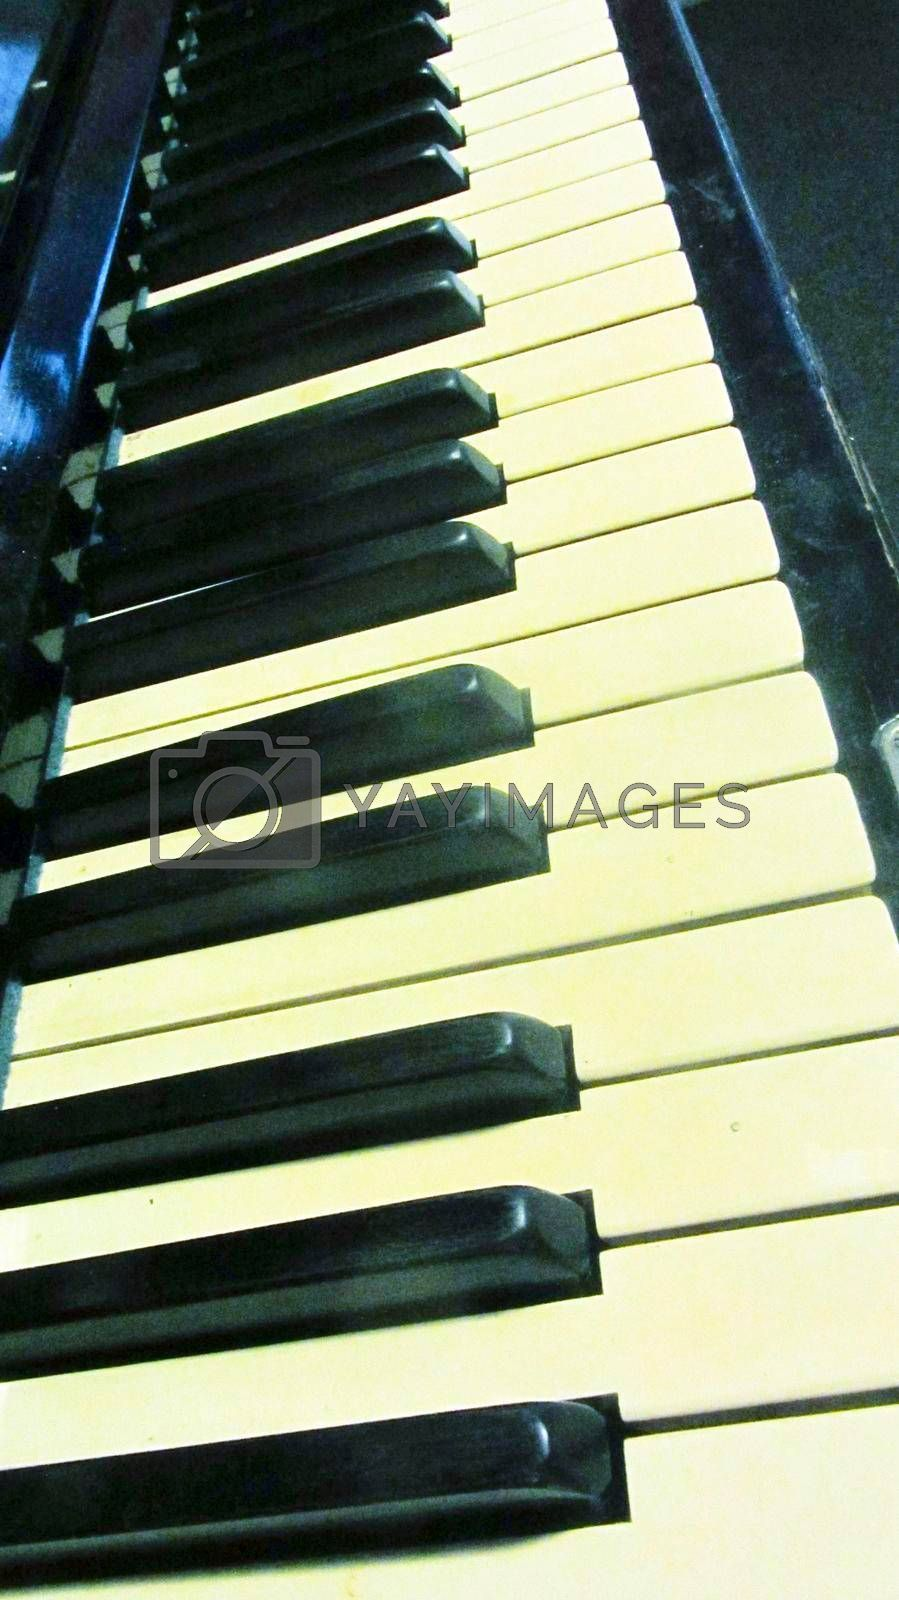 the keys of a piano, a stringed musical instrument